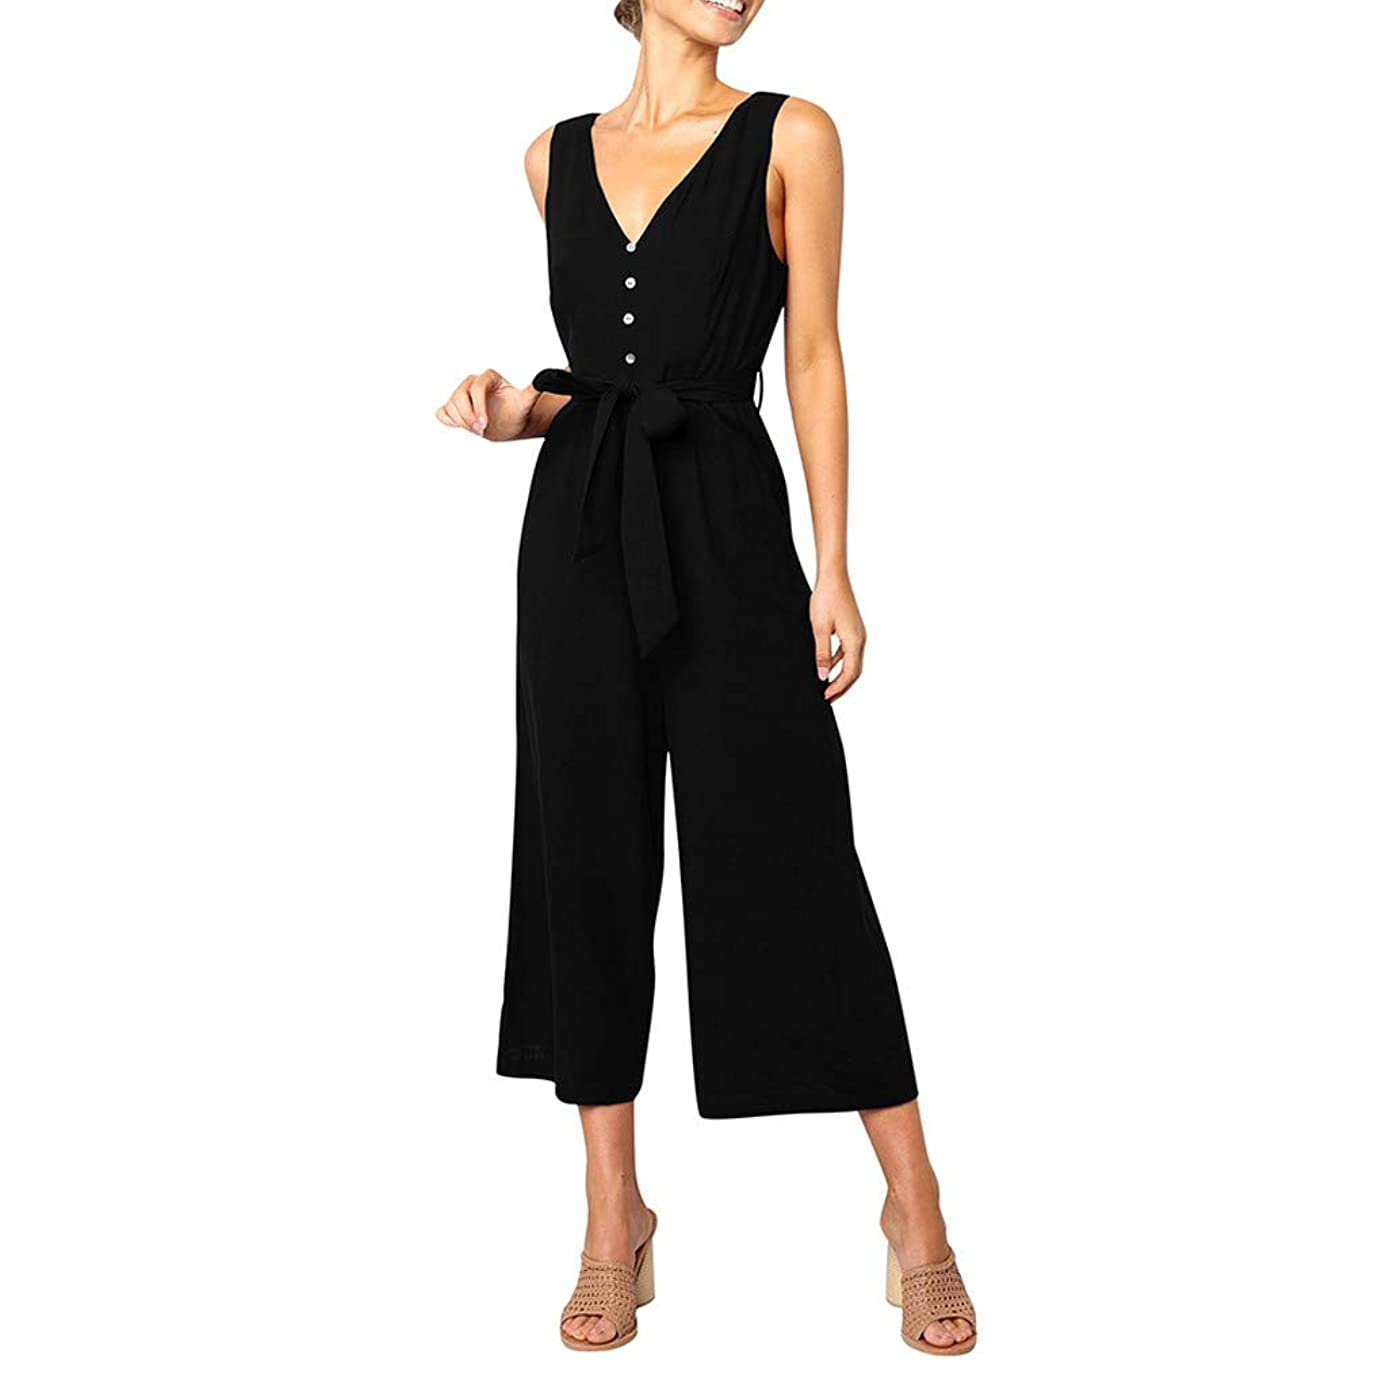 SMALLE_Pants Beach Jumpsuit for Women,SMALLE??? Women Sexy V Neck on Romper Twist Knot Wide Legs Loose Casual Jumpsuit